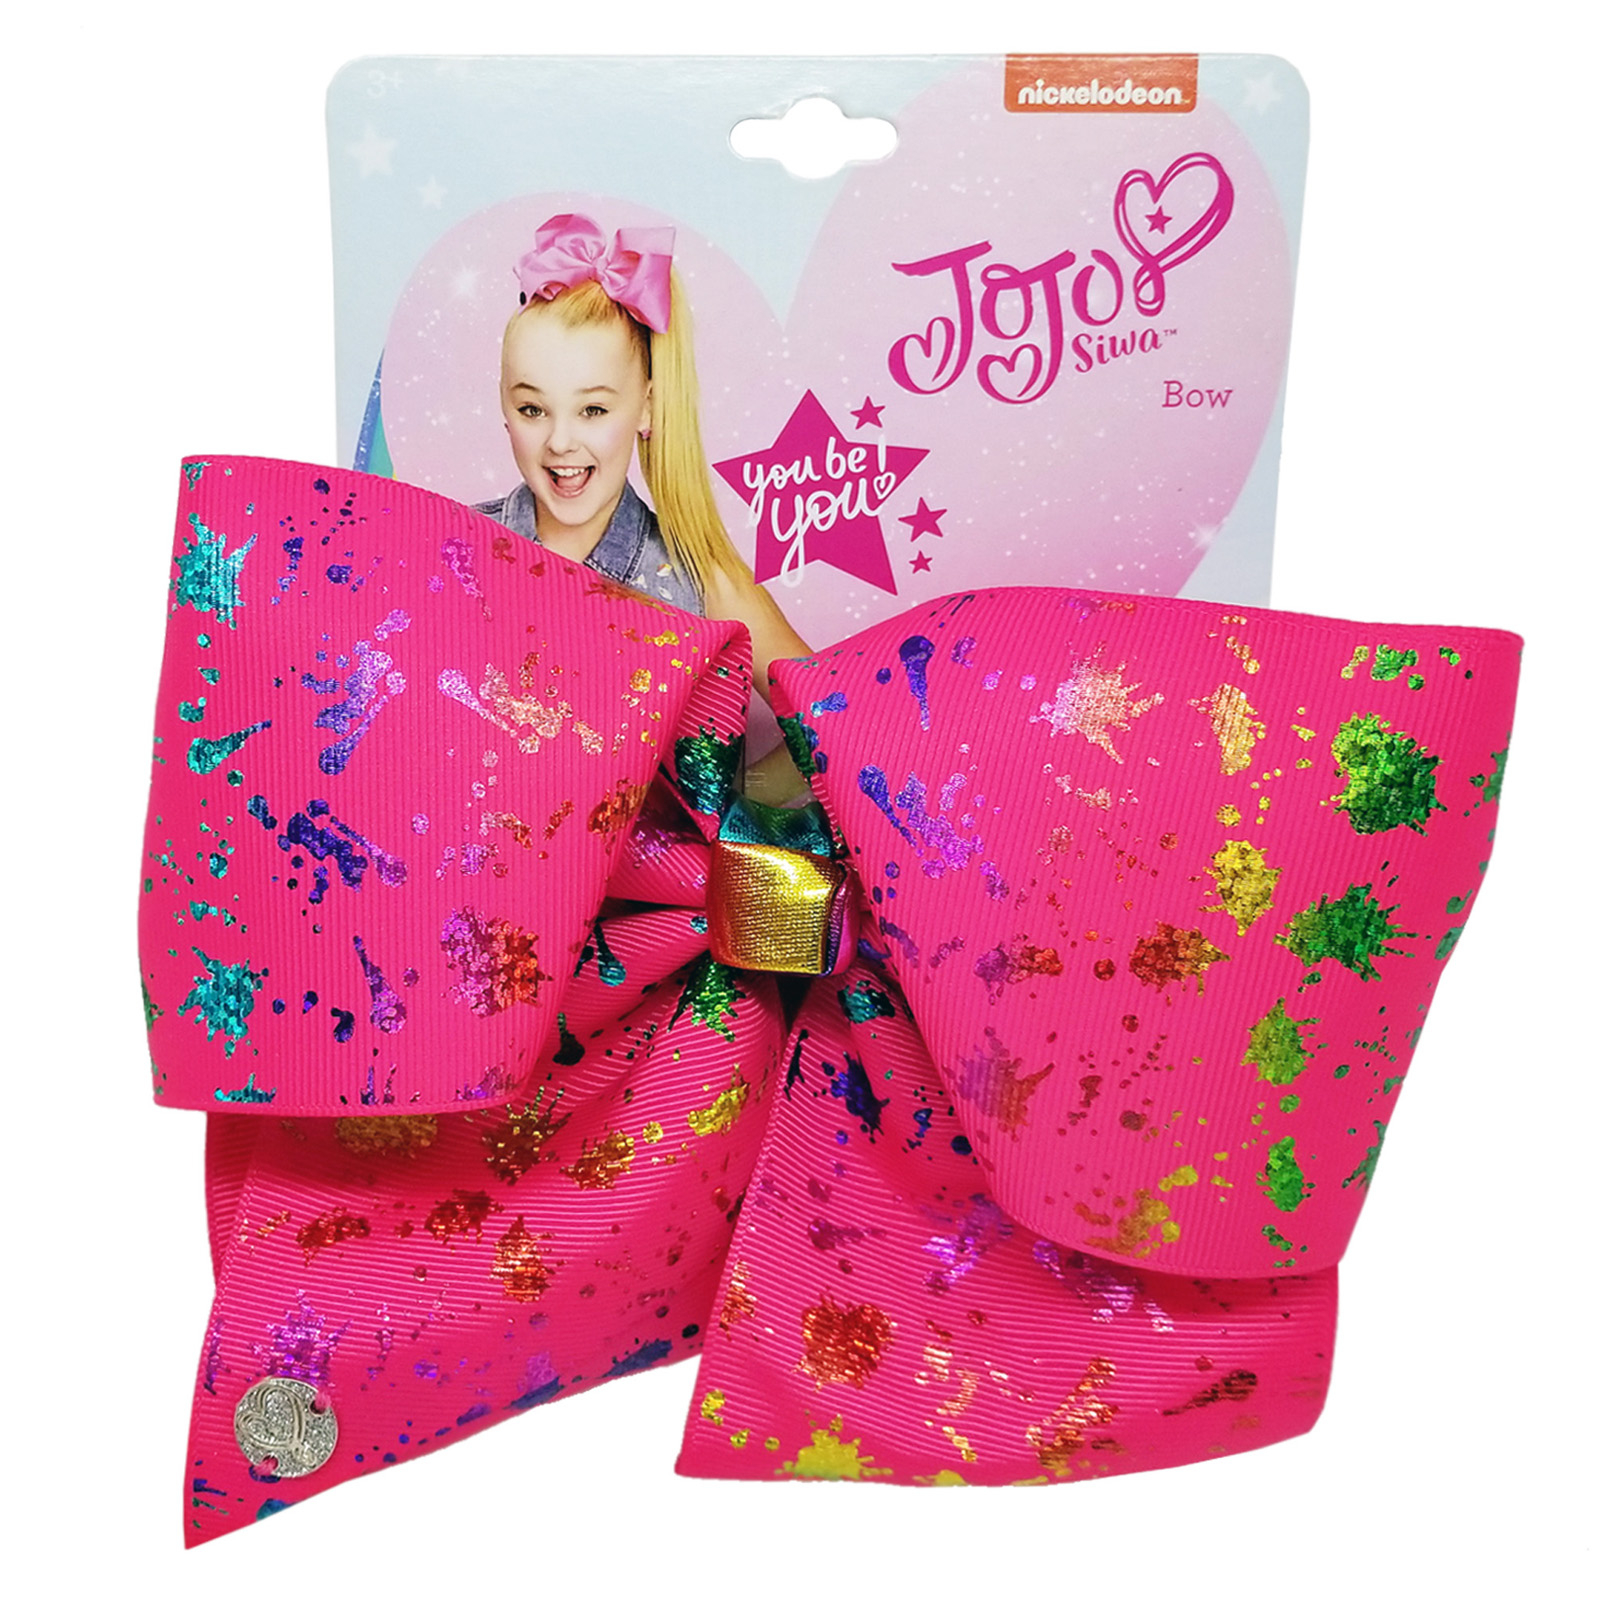 Nickelodeon JoJo Siwa Girls Large Pink Bow Rainbow Splatter